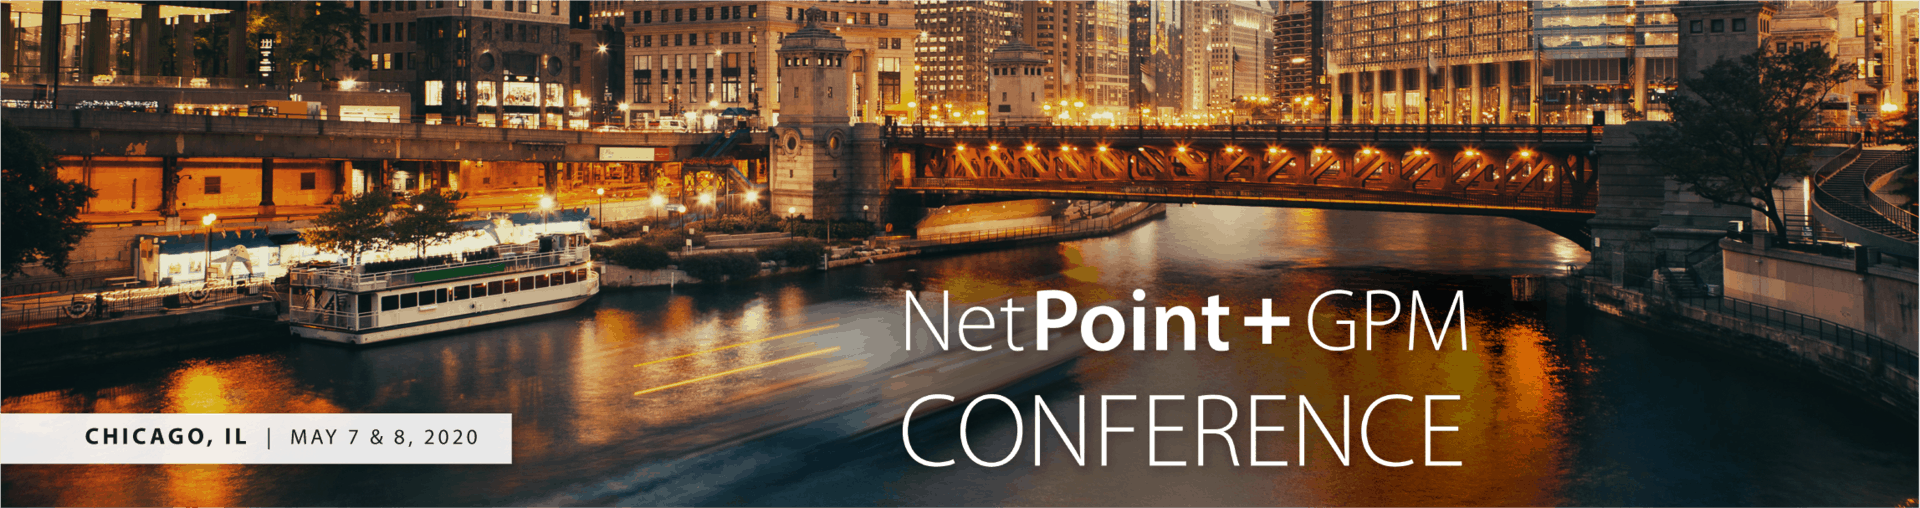 2020 NetPoint + GPM Conference - Chicago, IL, May 7-8